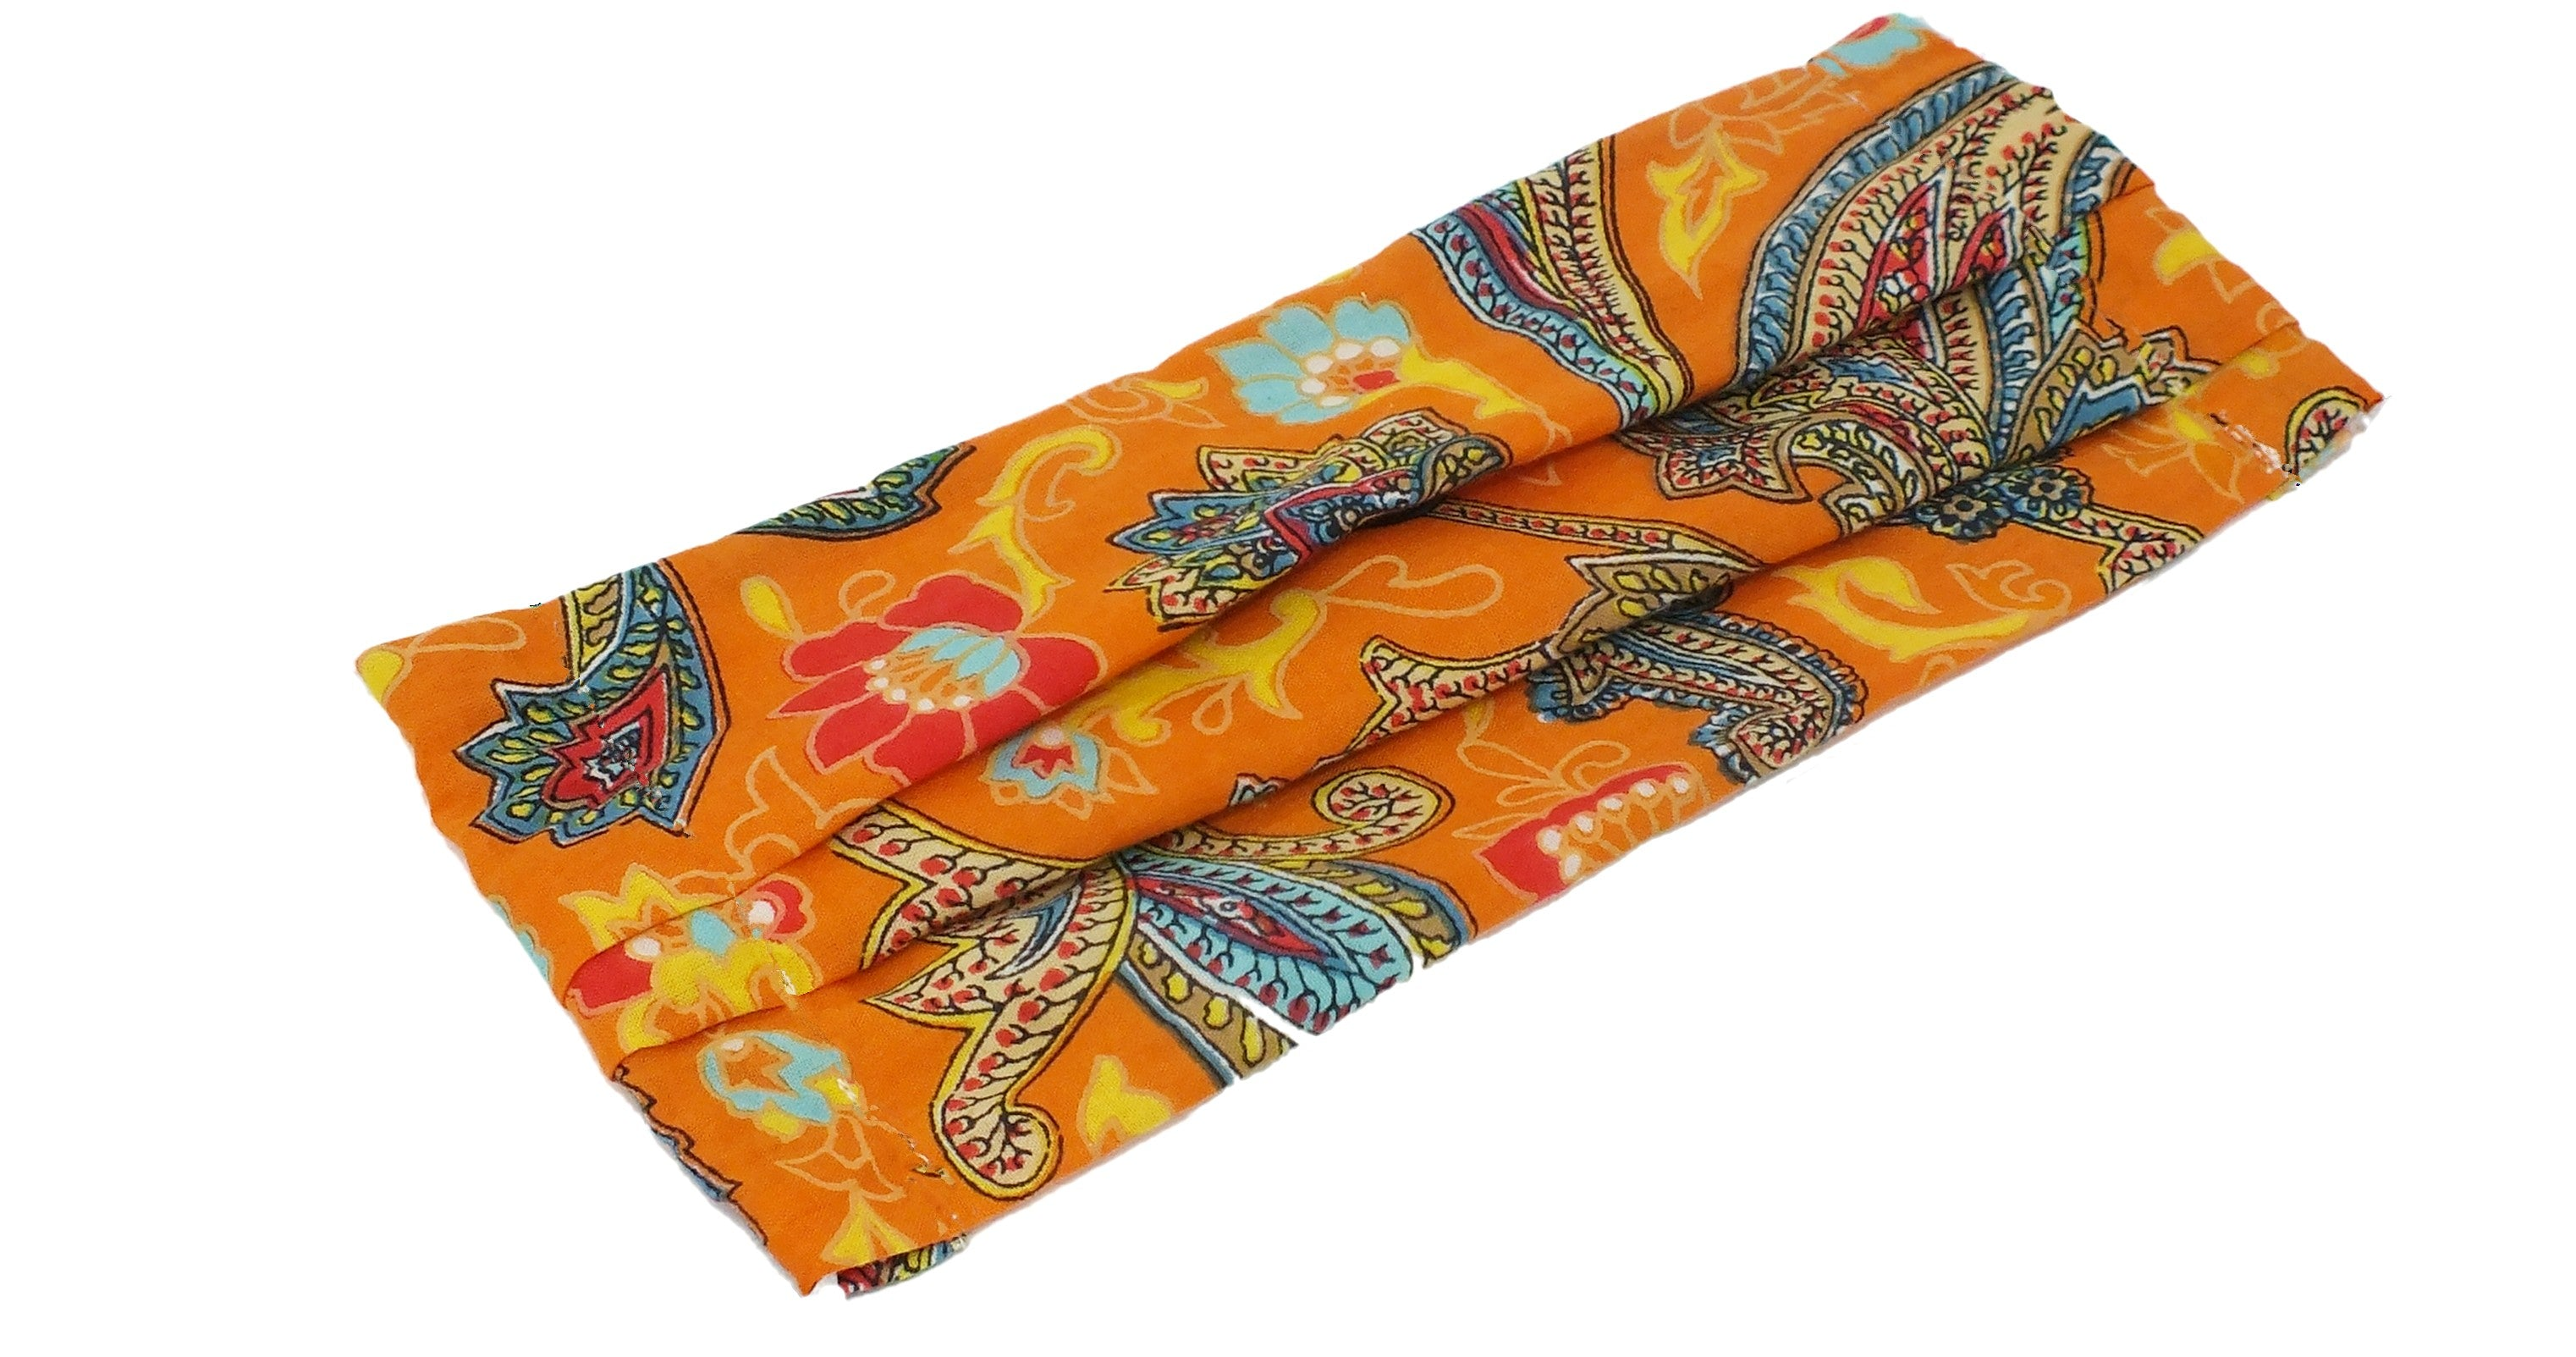 Eco-Friendly Face Mask/Covering - Orange Paisley